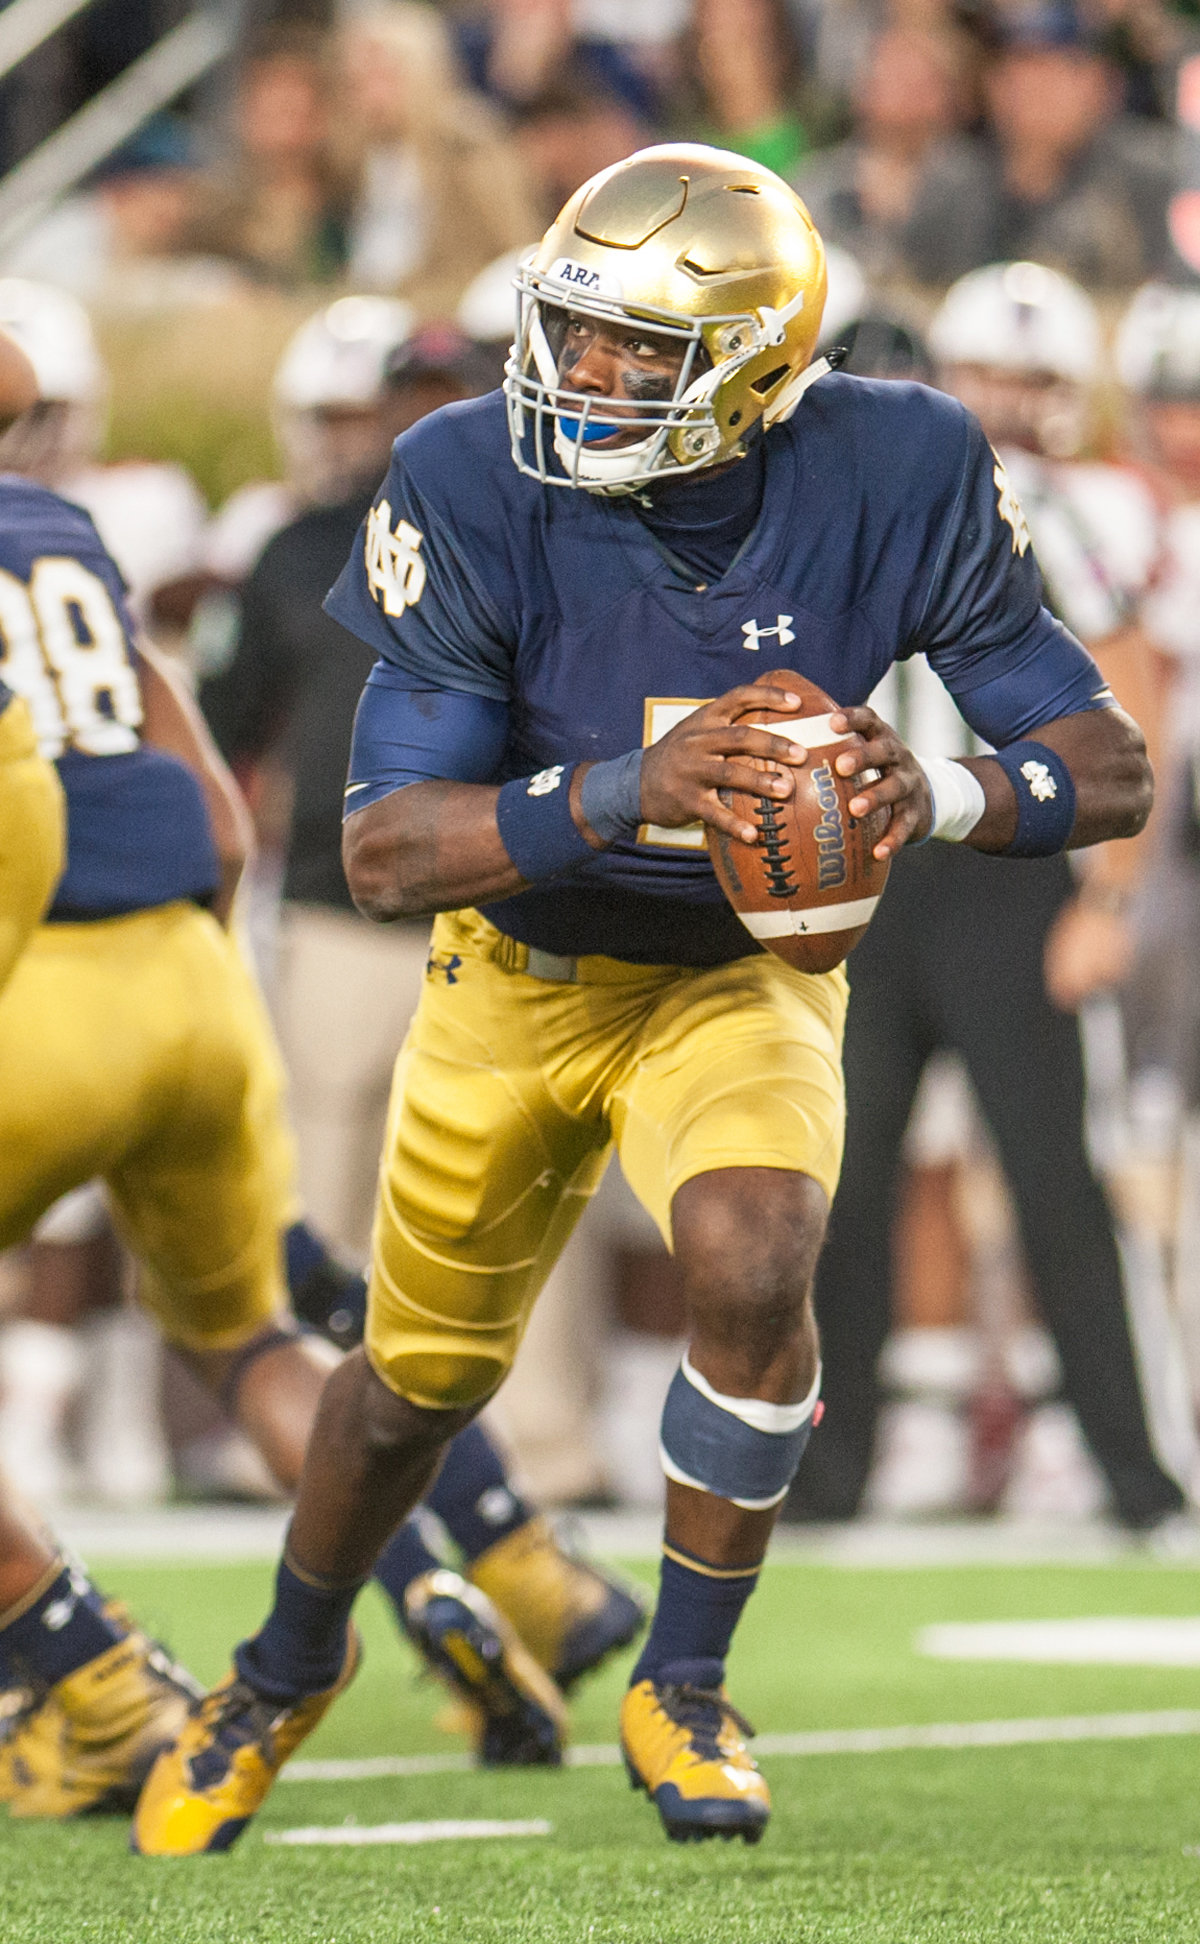 Irish junior quarterback Brandon Wimbush scrambles with the ball during Notre Dame's 52-17 win over Miami (OH) on Saturday at Notre Dame Stadium.